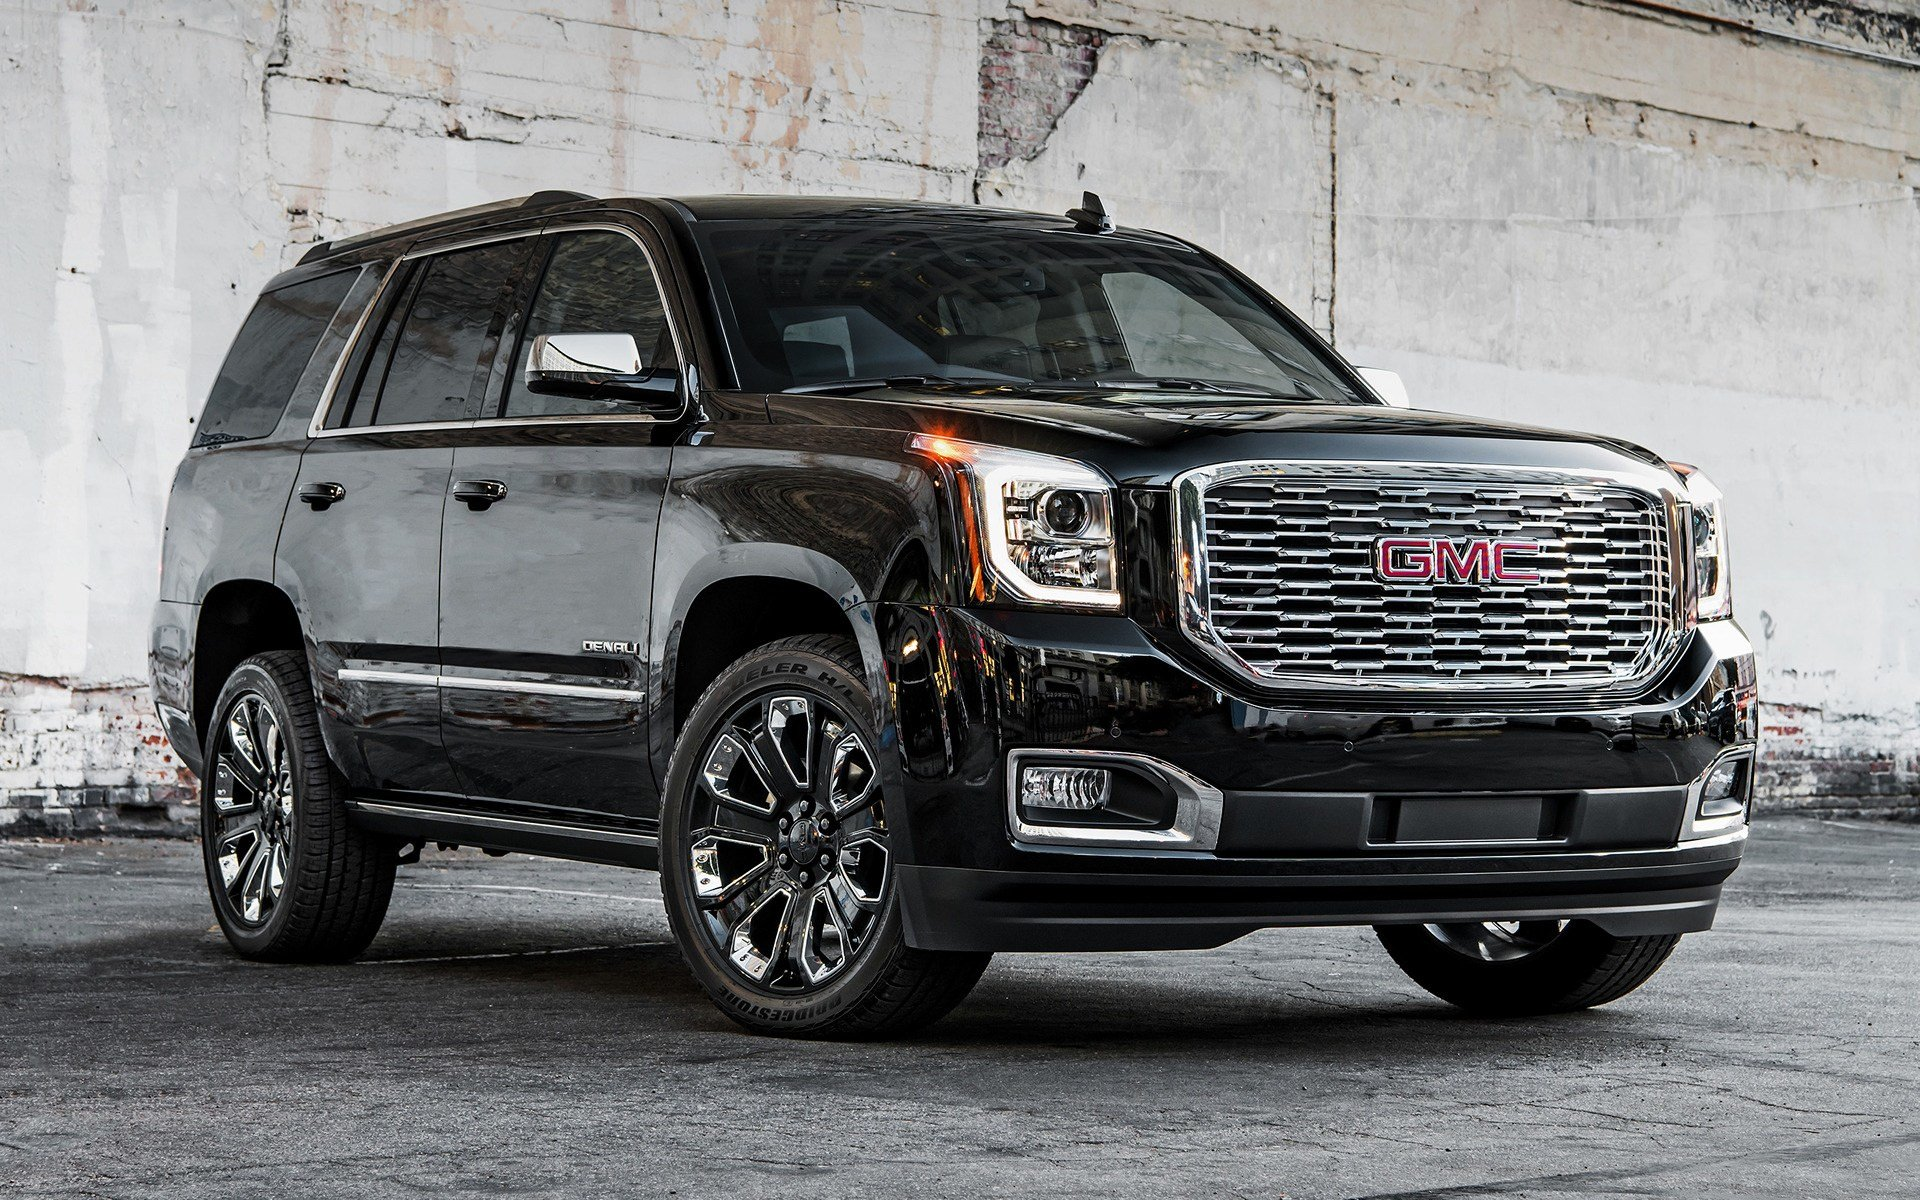 Latest 2018 Gmc Yukon Denali Ultimate Black Edition Wallpapers Free Download